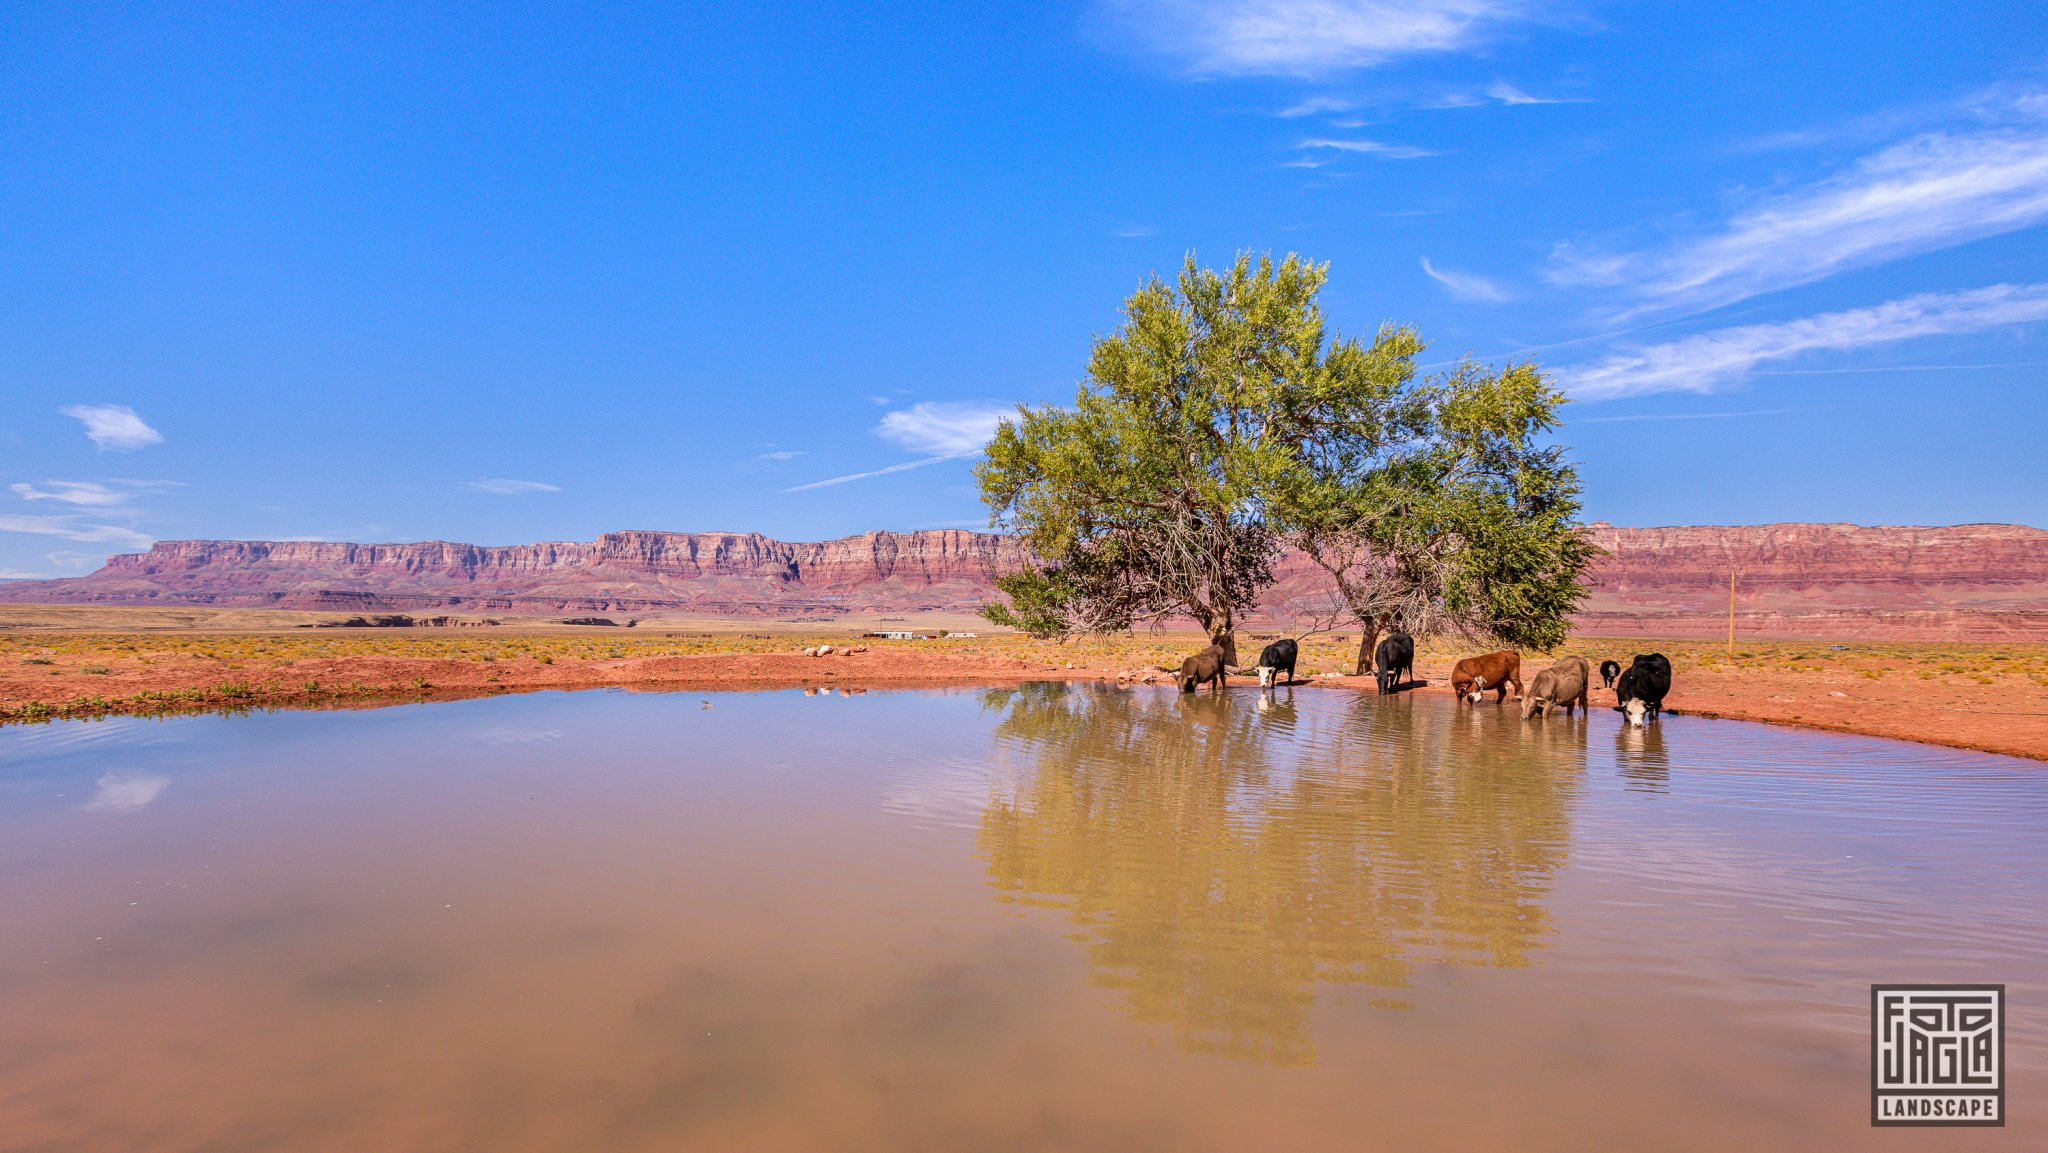 Cows drinking in Marble Canyon Arizona, USA 2019